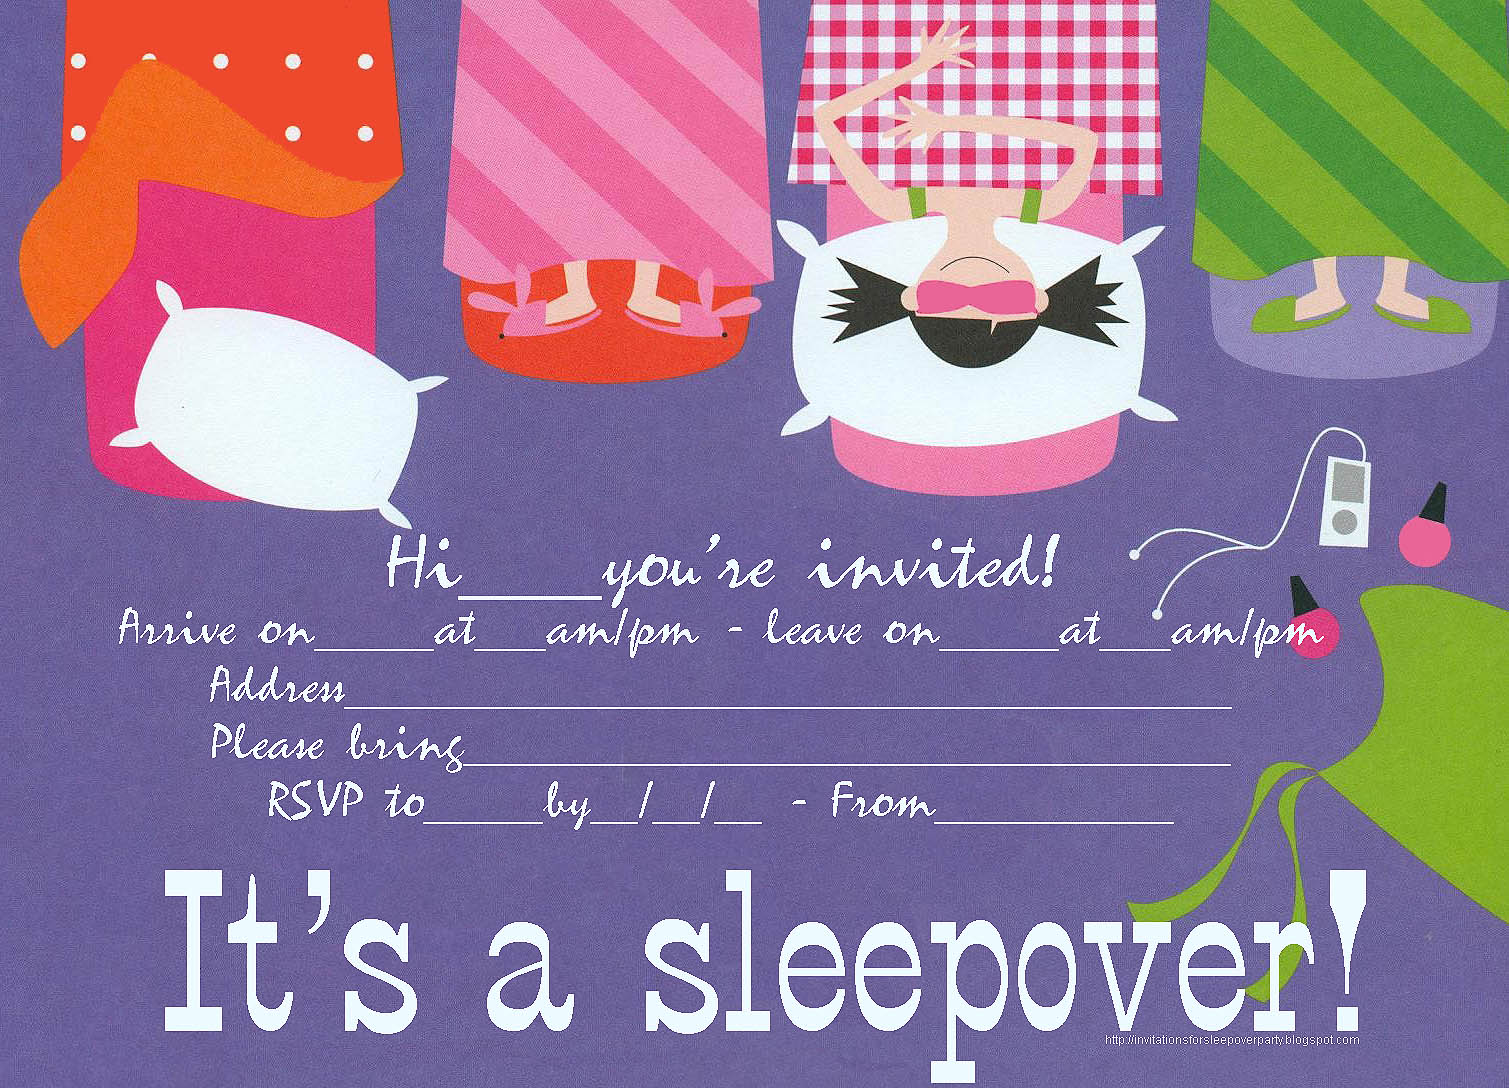 free printable birthday sleepover invitation templates ; e29b4b25adba0227c2cc0b69799c1cfe